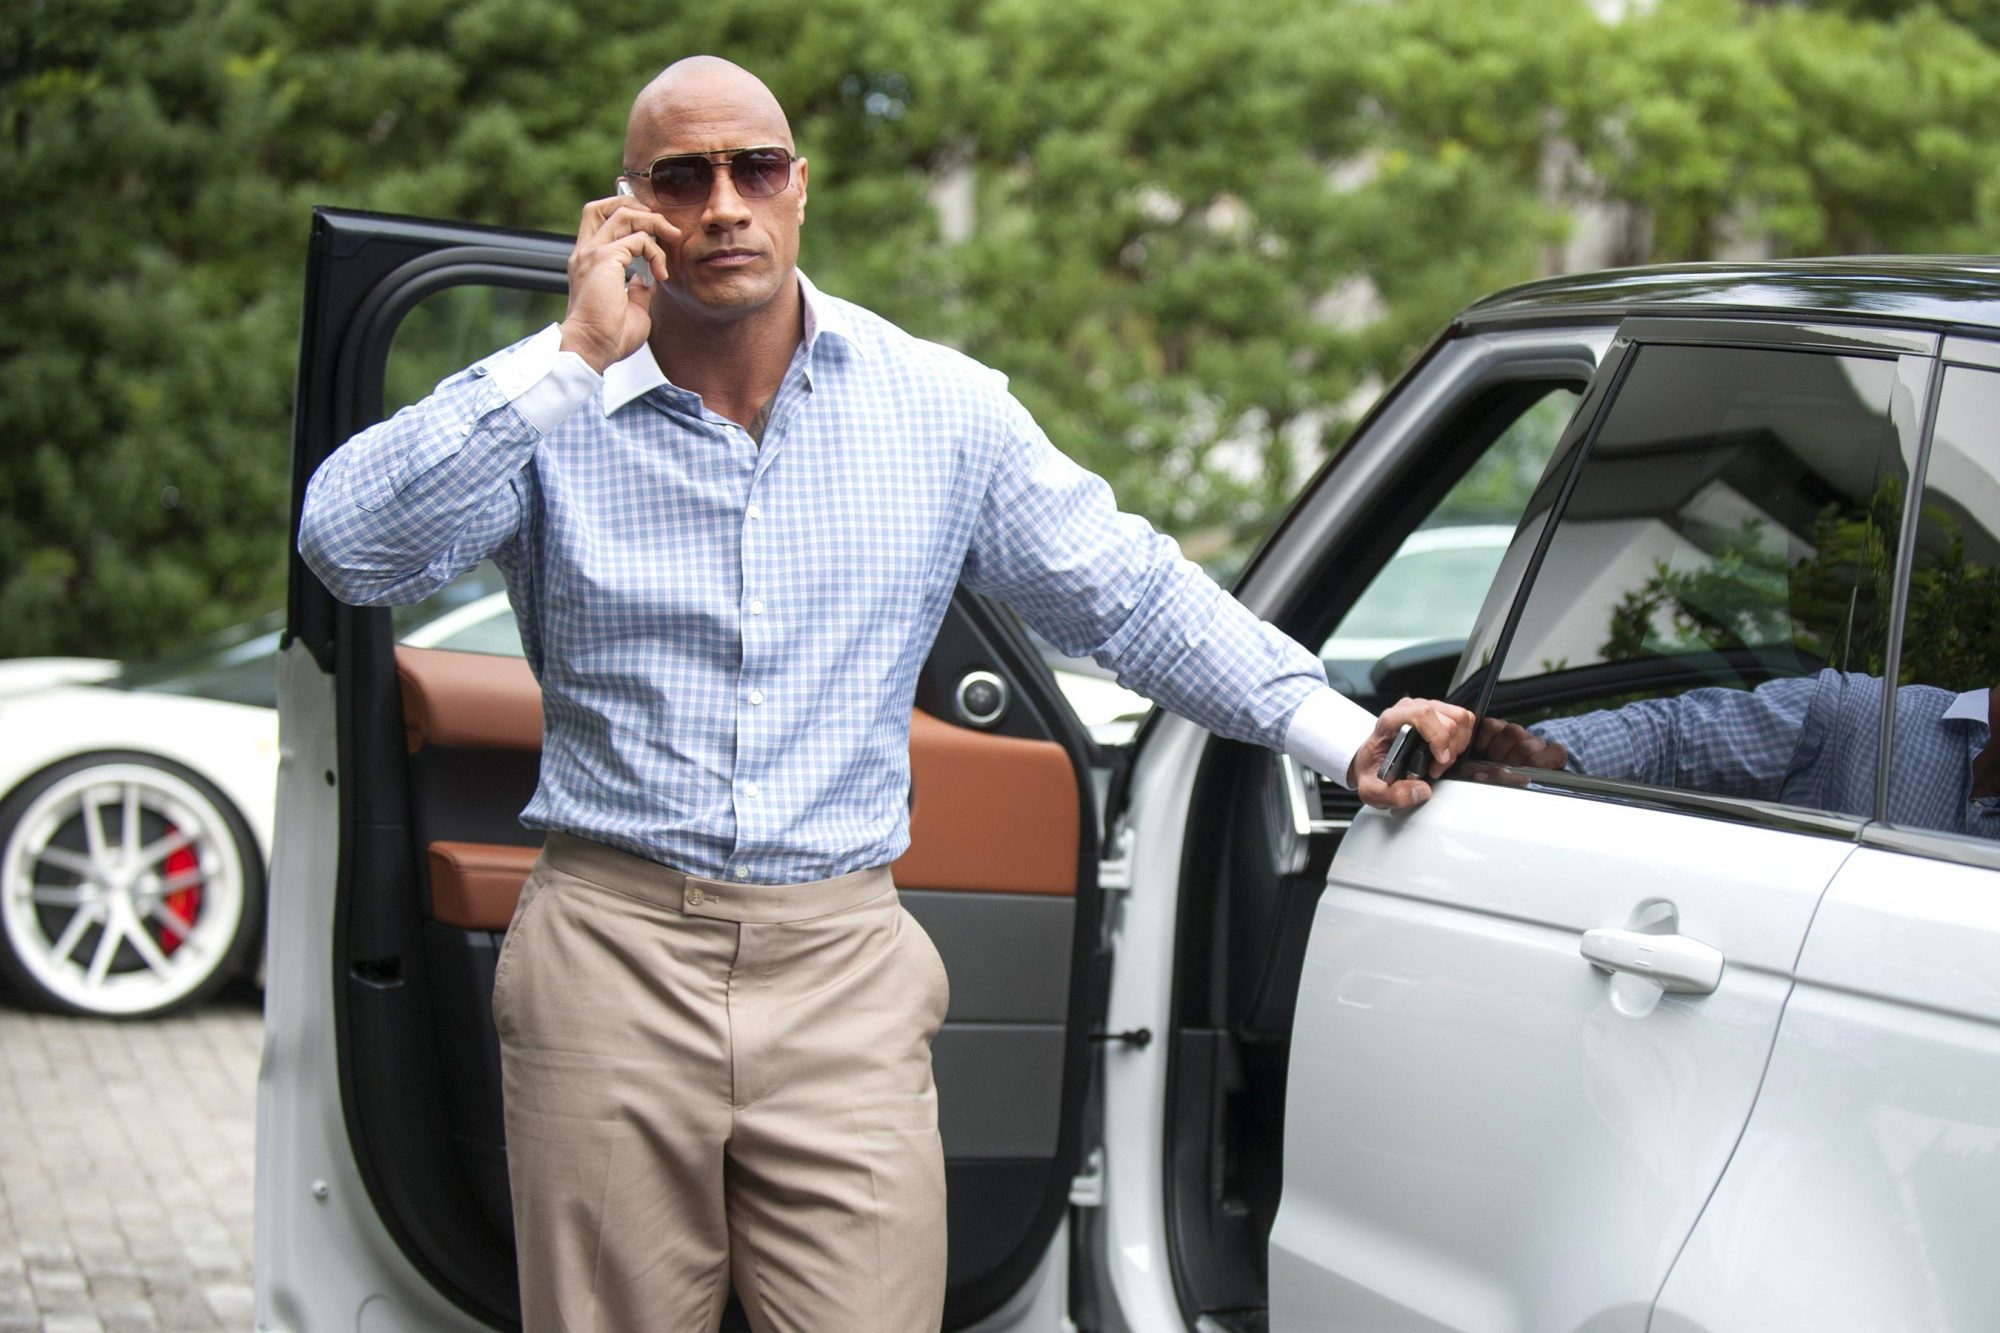 BallersSeason 1, Episode 1 - Pilot - June 21, 2015Dwayne Johnson